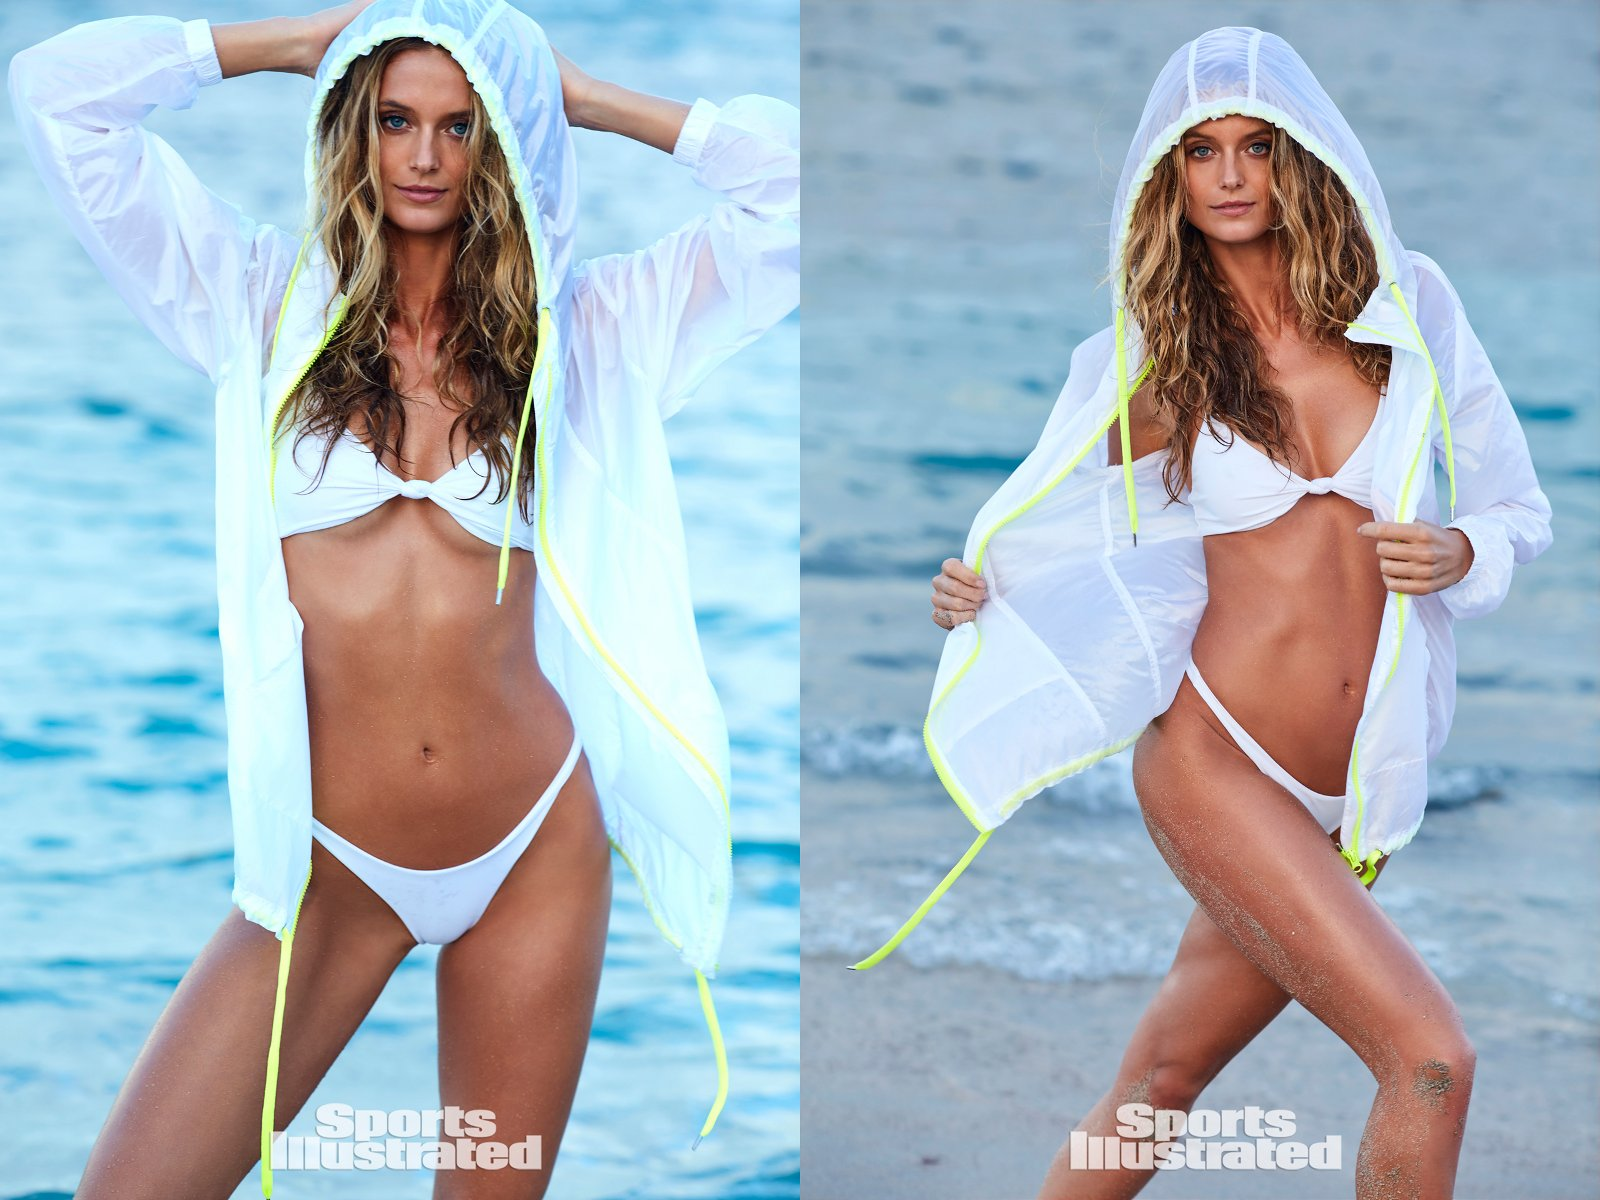 Sports Illustrated 2018 Swimsuit Model Kate Bock